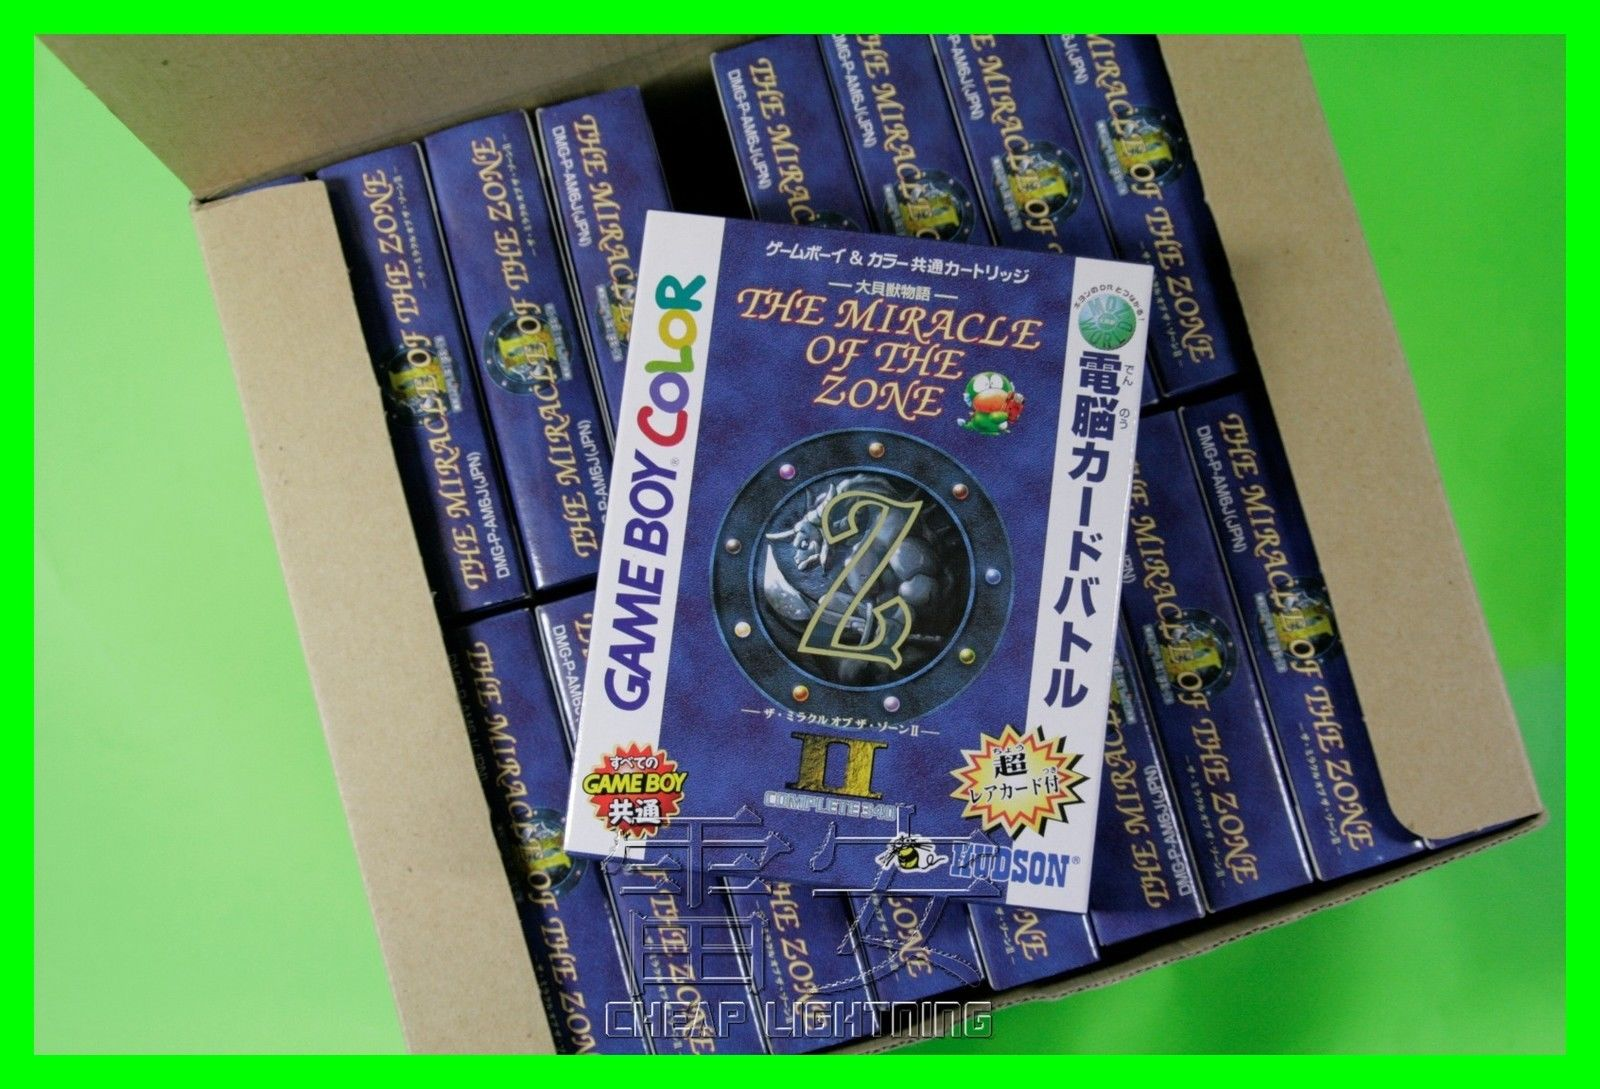 Game boy color japan - Miracle Of The Zone Ii 2 Gameboy Color New Nib Japan Jp Dmg Am6j Nintendo Cheap Lightning